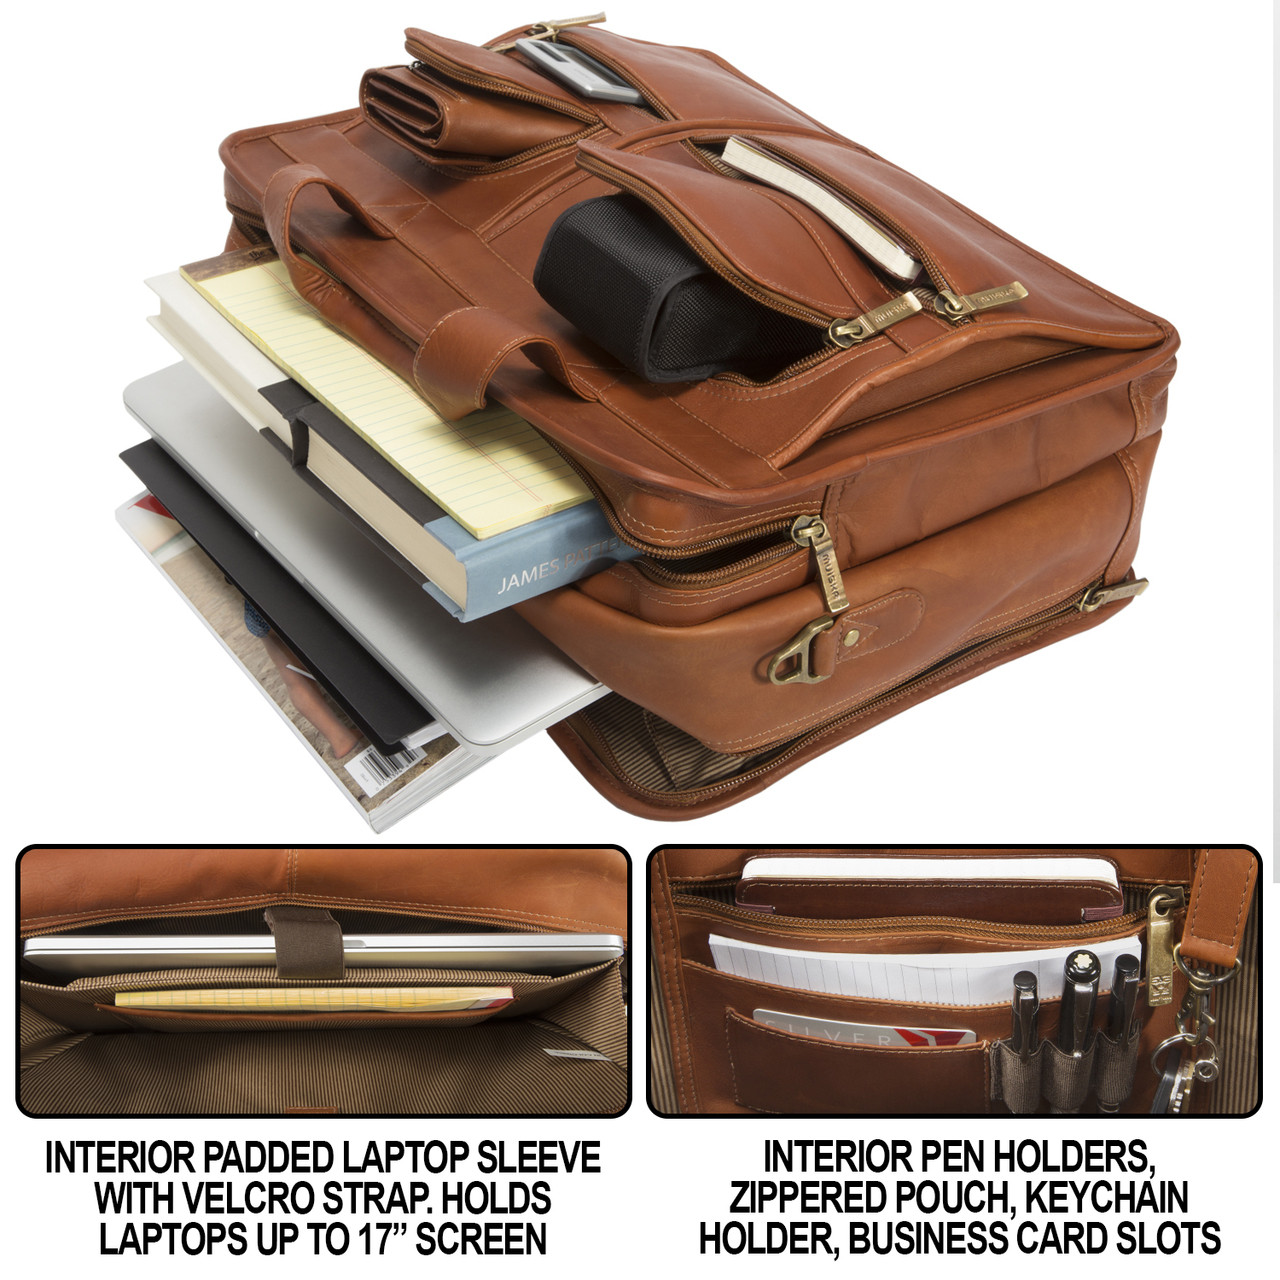 Muiska - New York - Laptop Briefcase - has interior pen holders, zippered pouch, key-chain holder, and business card slot